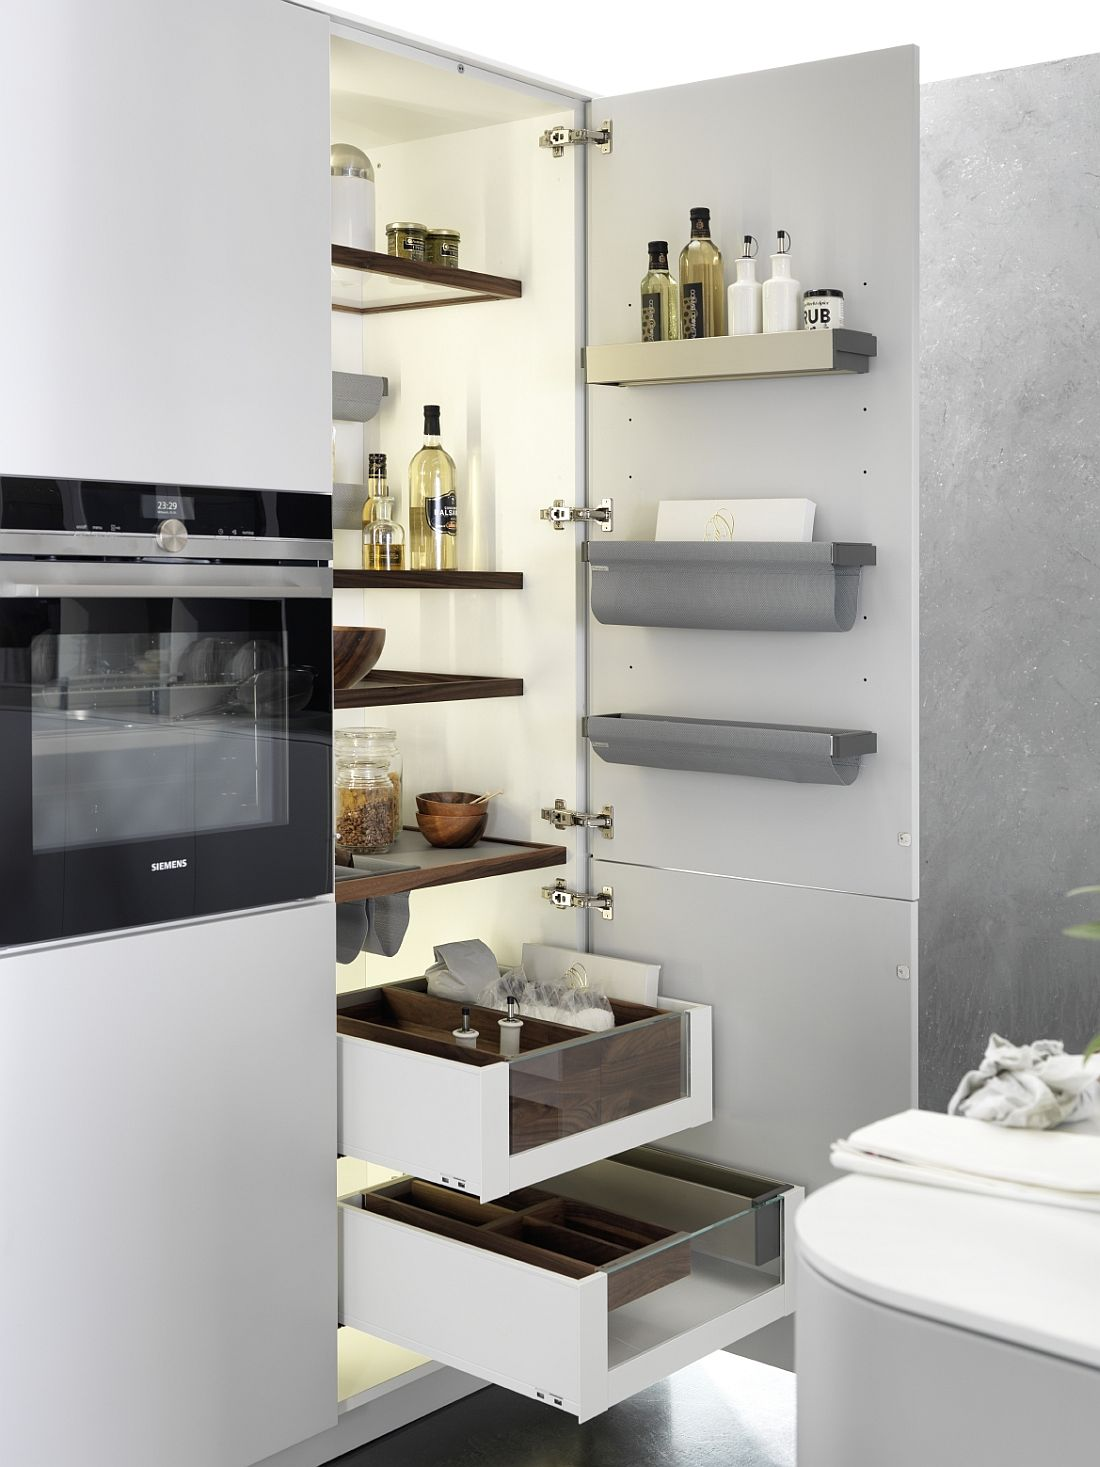 Amazing-kitchen-storage-solutions-with-space-savvy-design